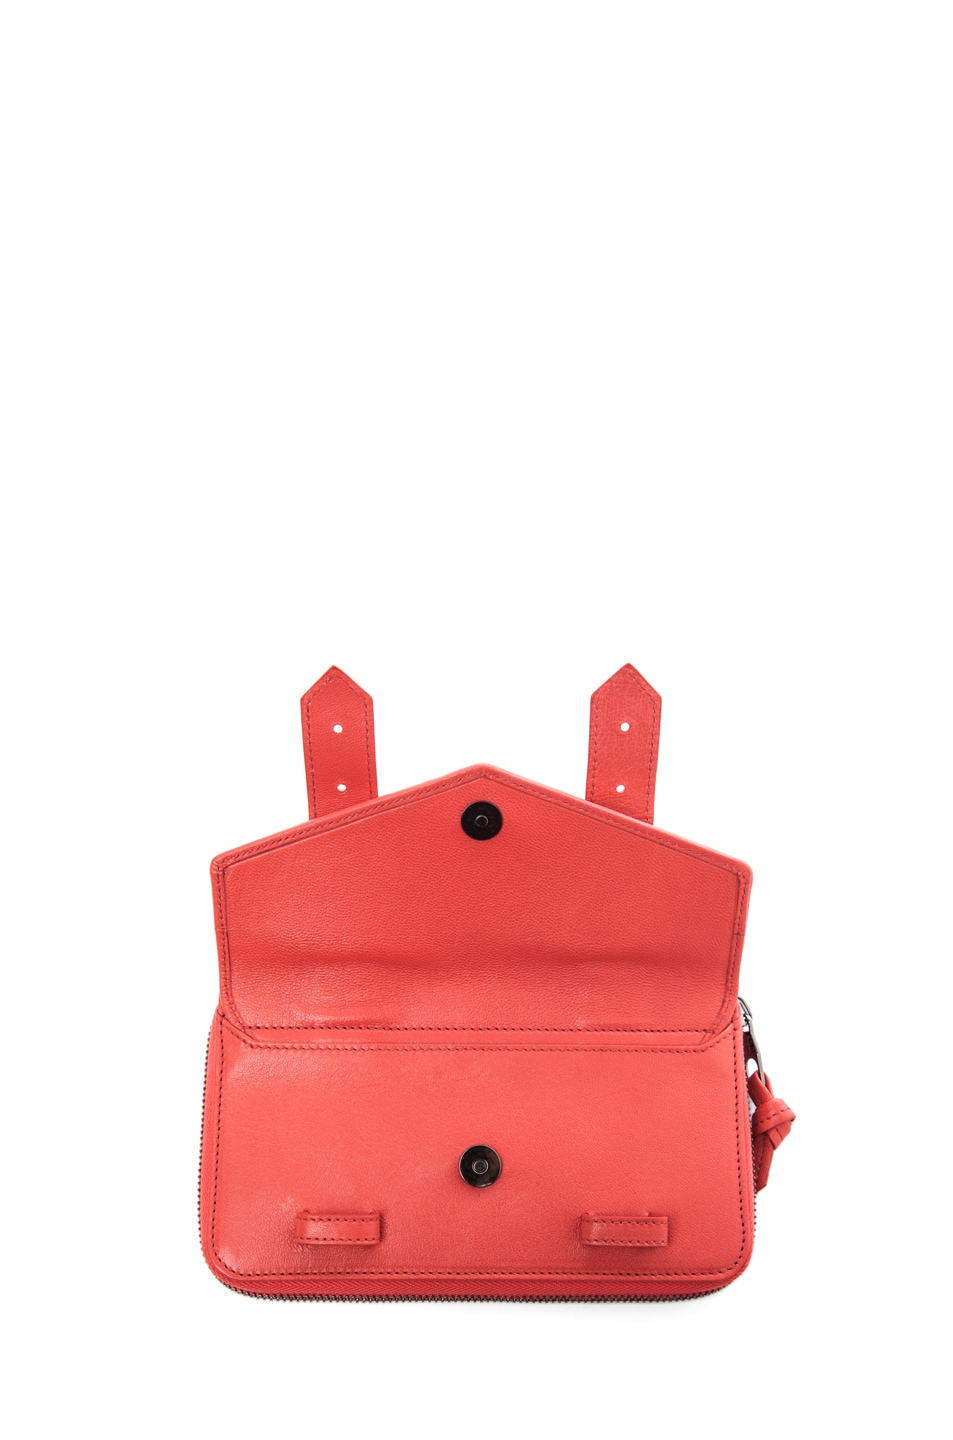 Image 5 of Proenza Schouler PS1 Large Zip Wallet in Deep Coral